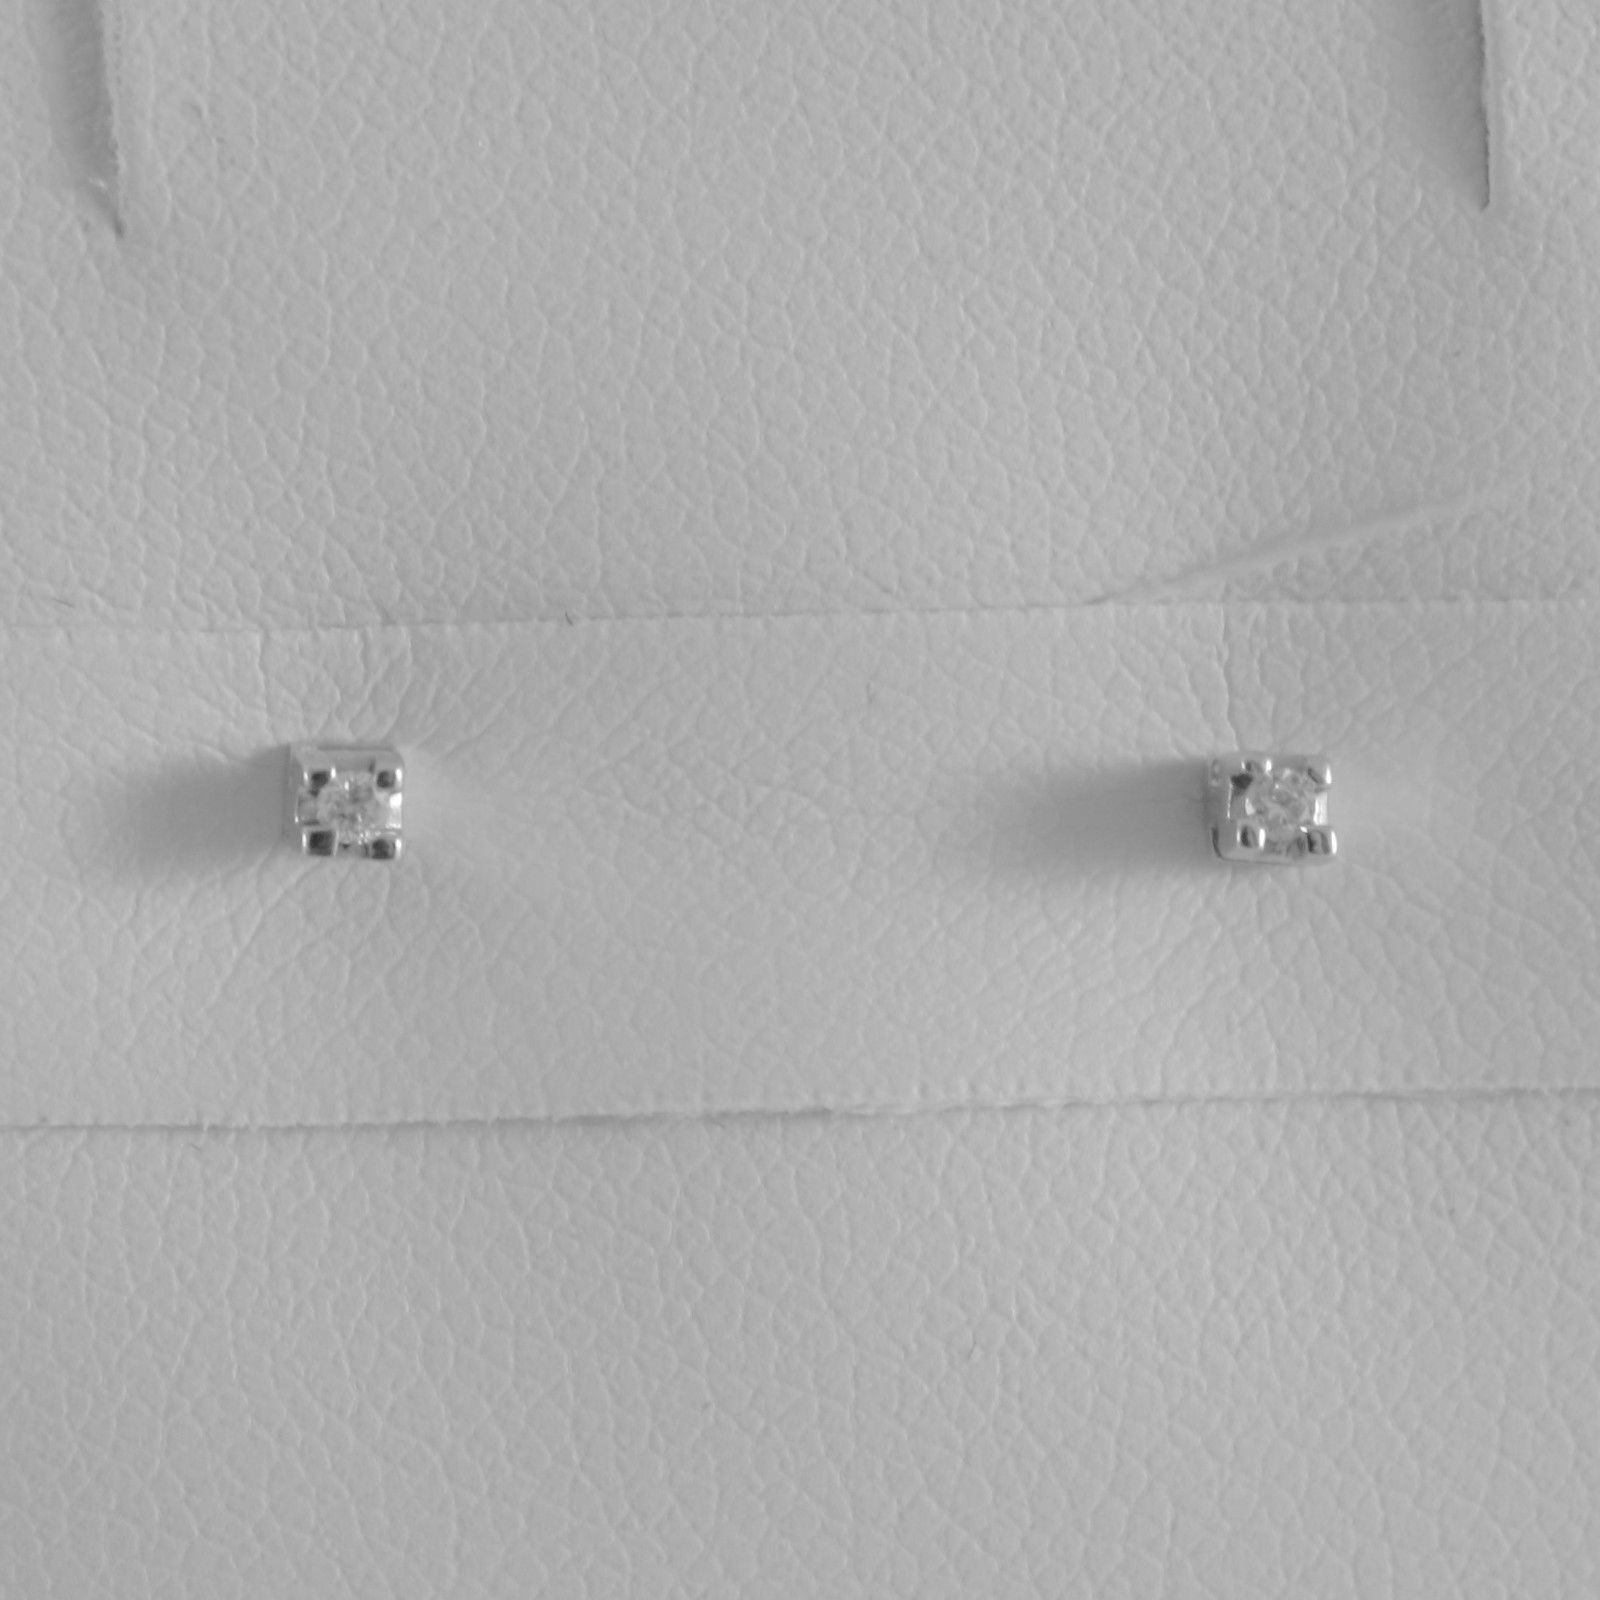 18K WHITE GOLD MINI SQUARE EARRINGS DIAMOND DIAMONDS 0.03 CT, MADE IN ITALY